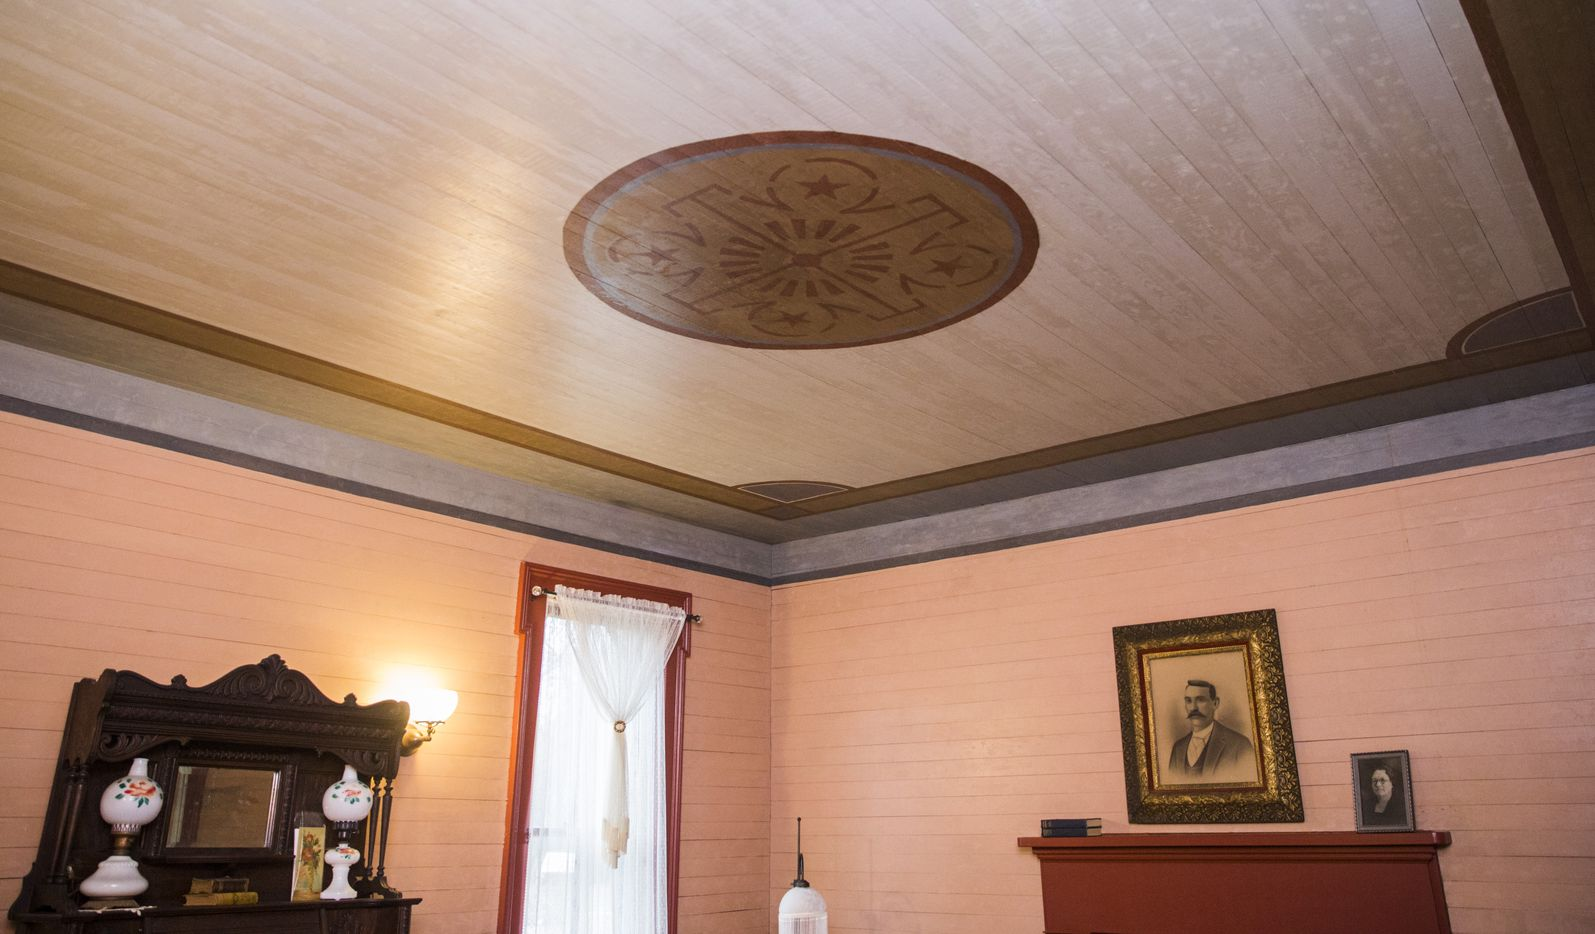 A painted ceiling in the music room inside the Lawrence House was among the discoveries that restorers made when multiple layers of wallpaper were removed.